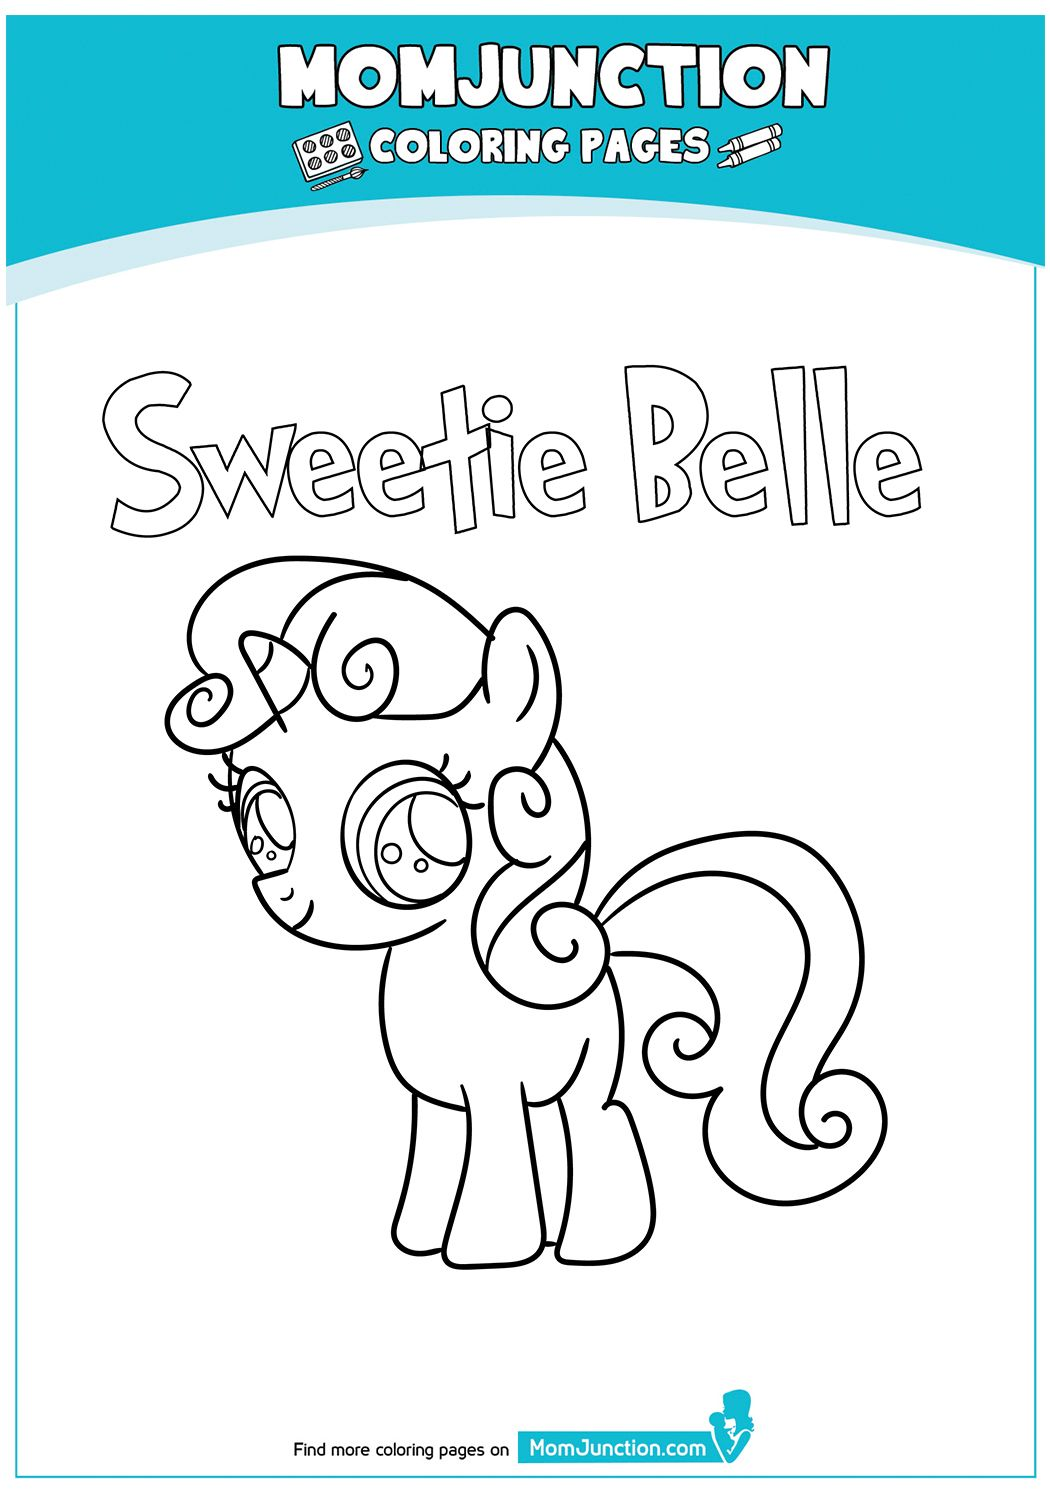 Print Coloring Image Momjunction Family Coloring Pages Coloring Pages Family Coloring